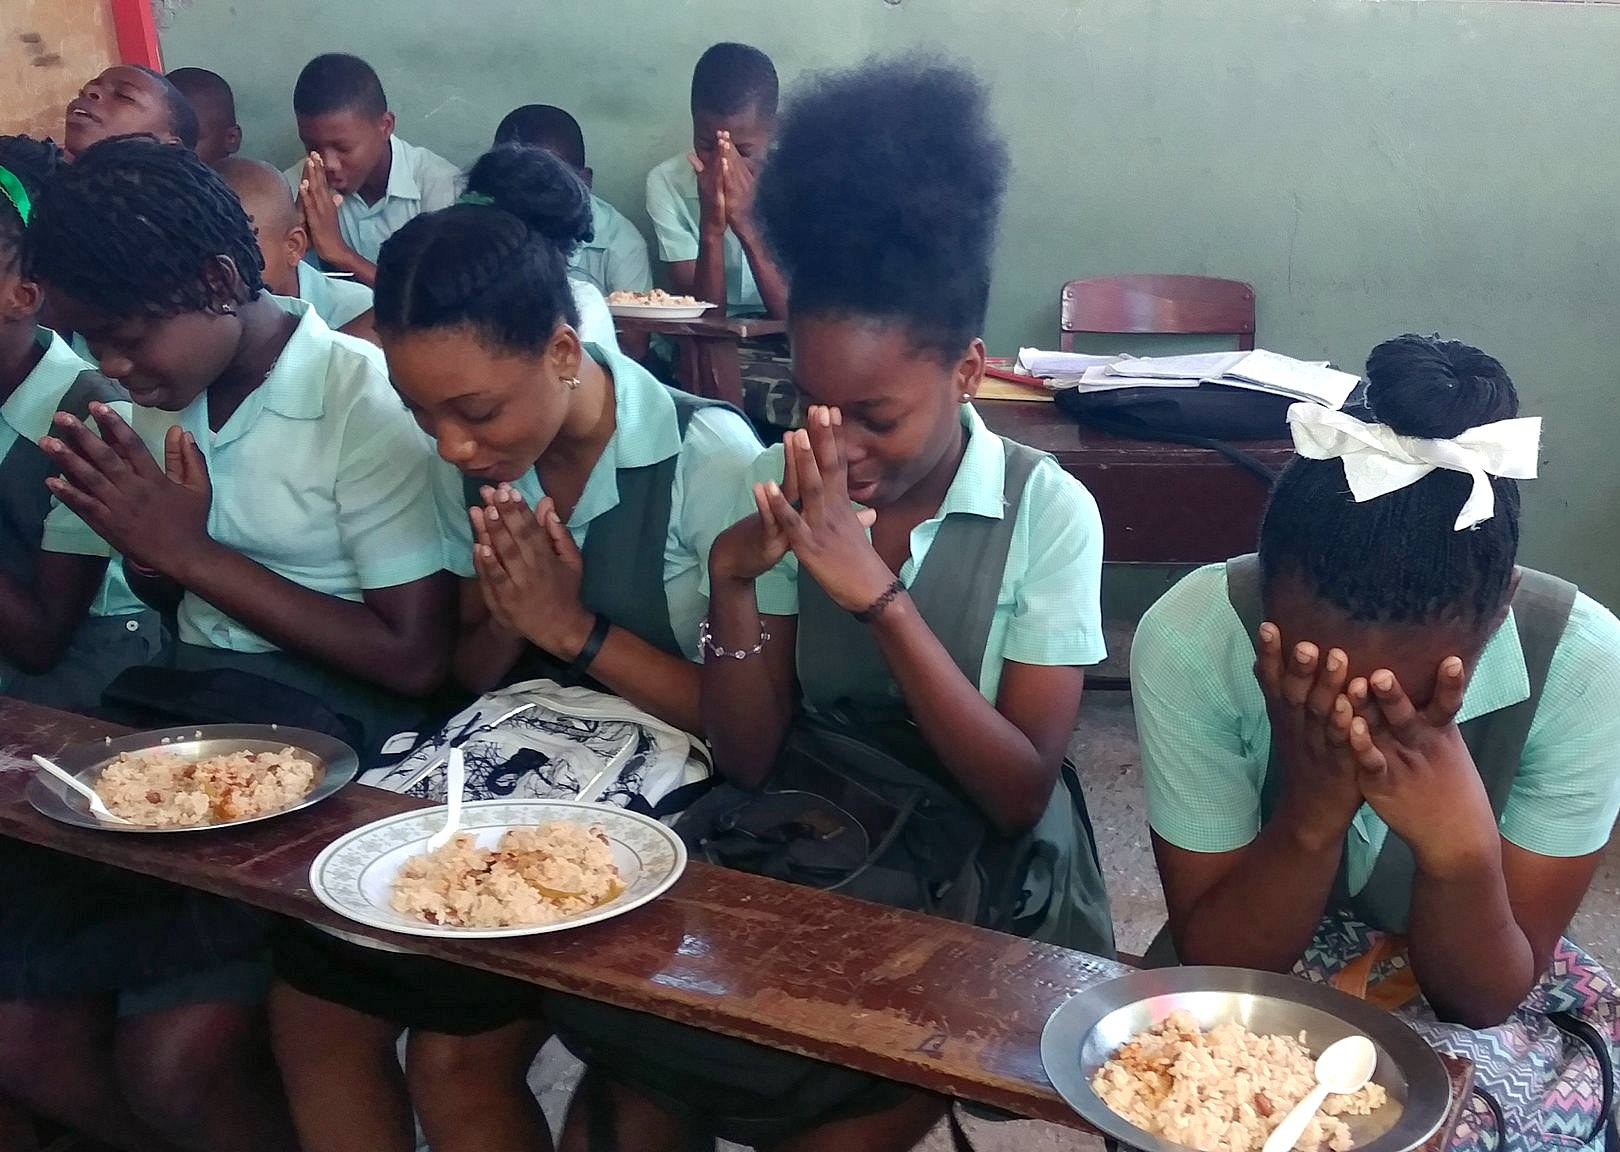 Haitian students praying before meal